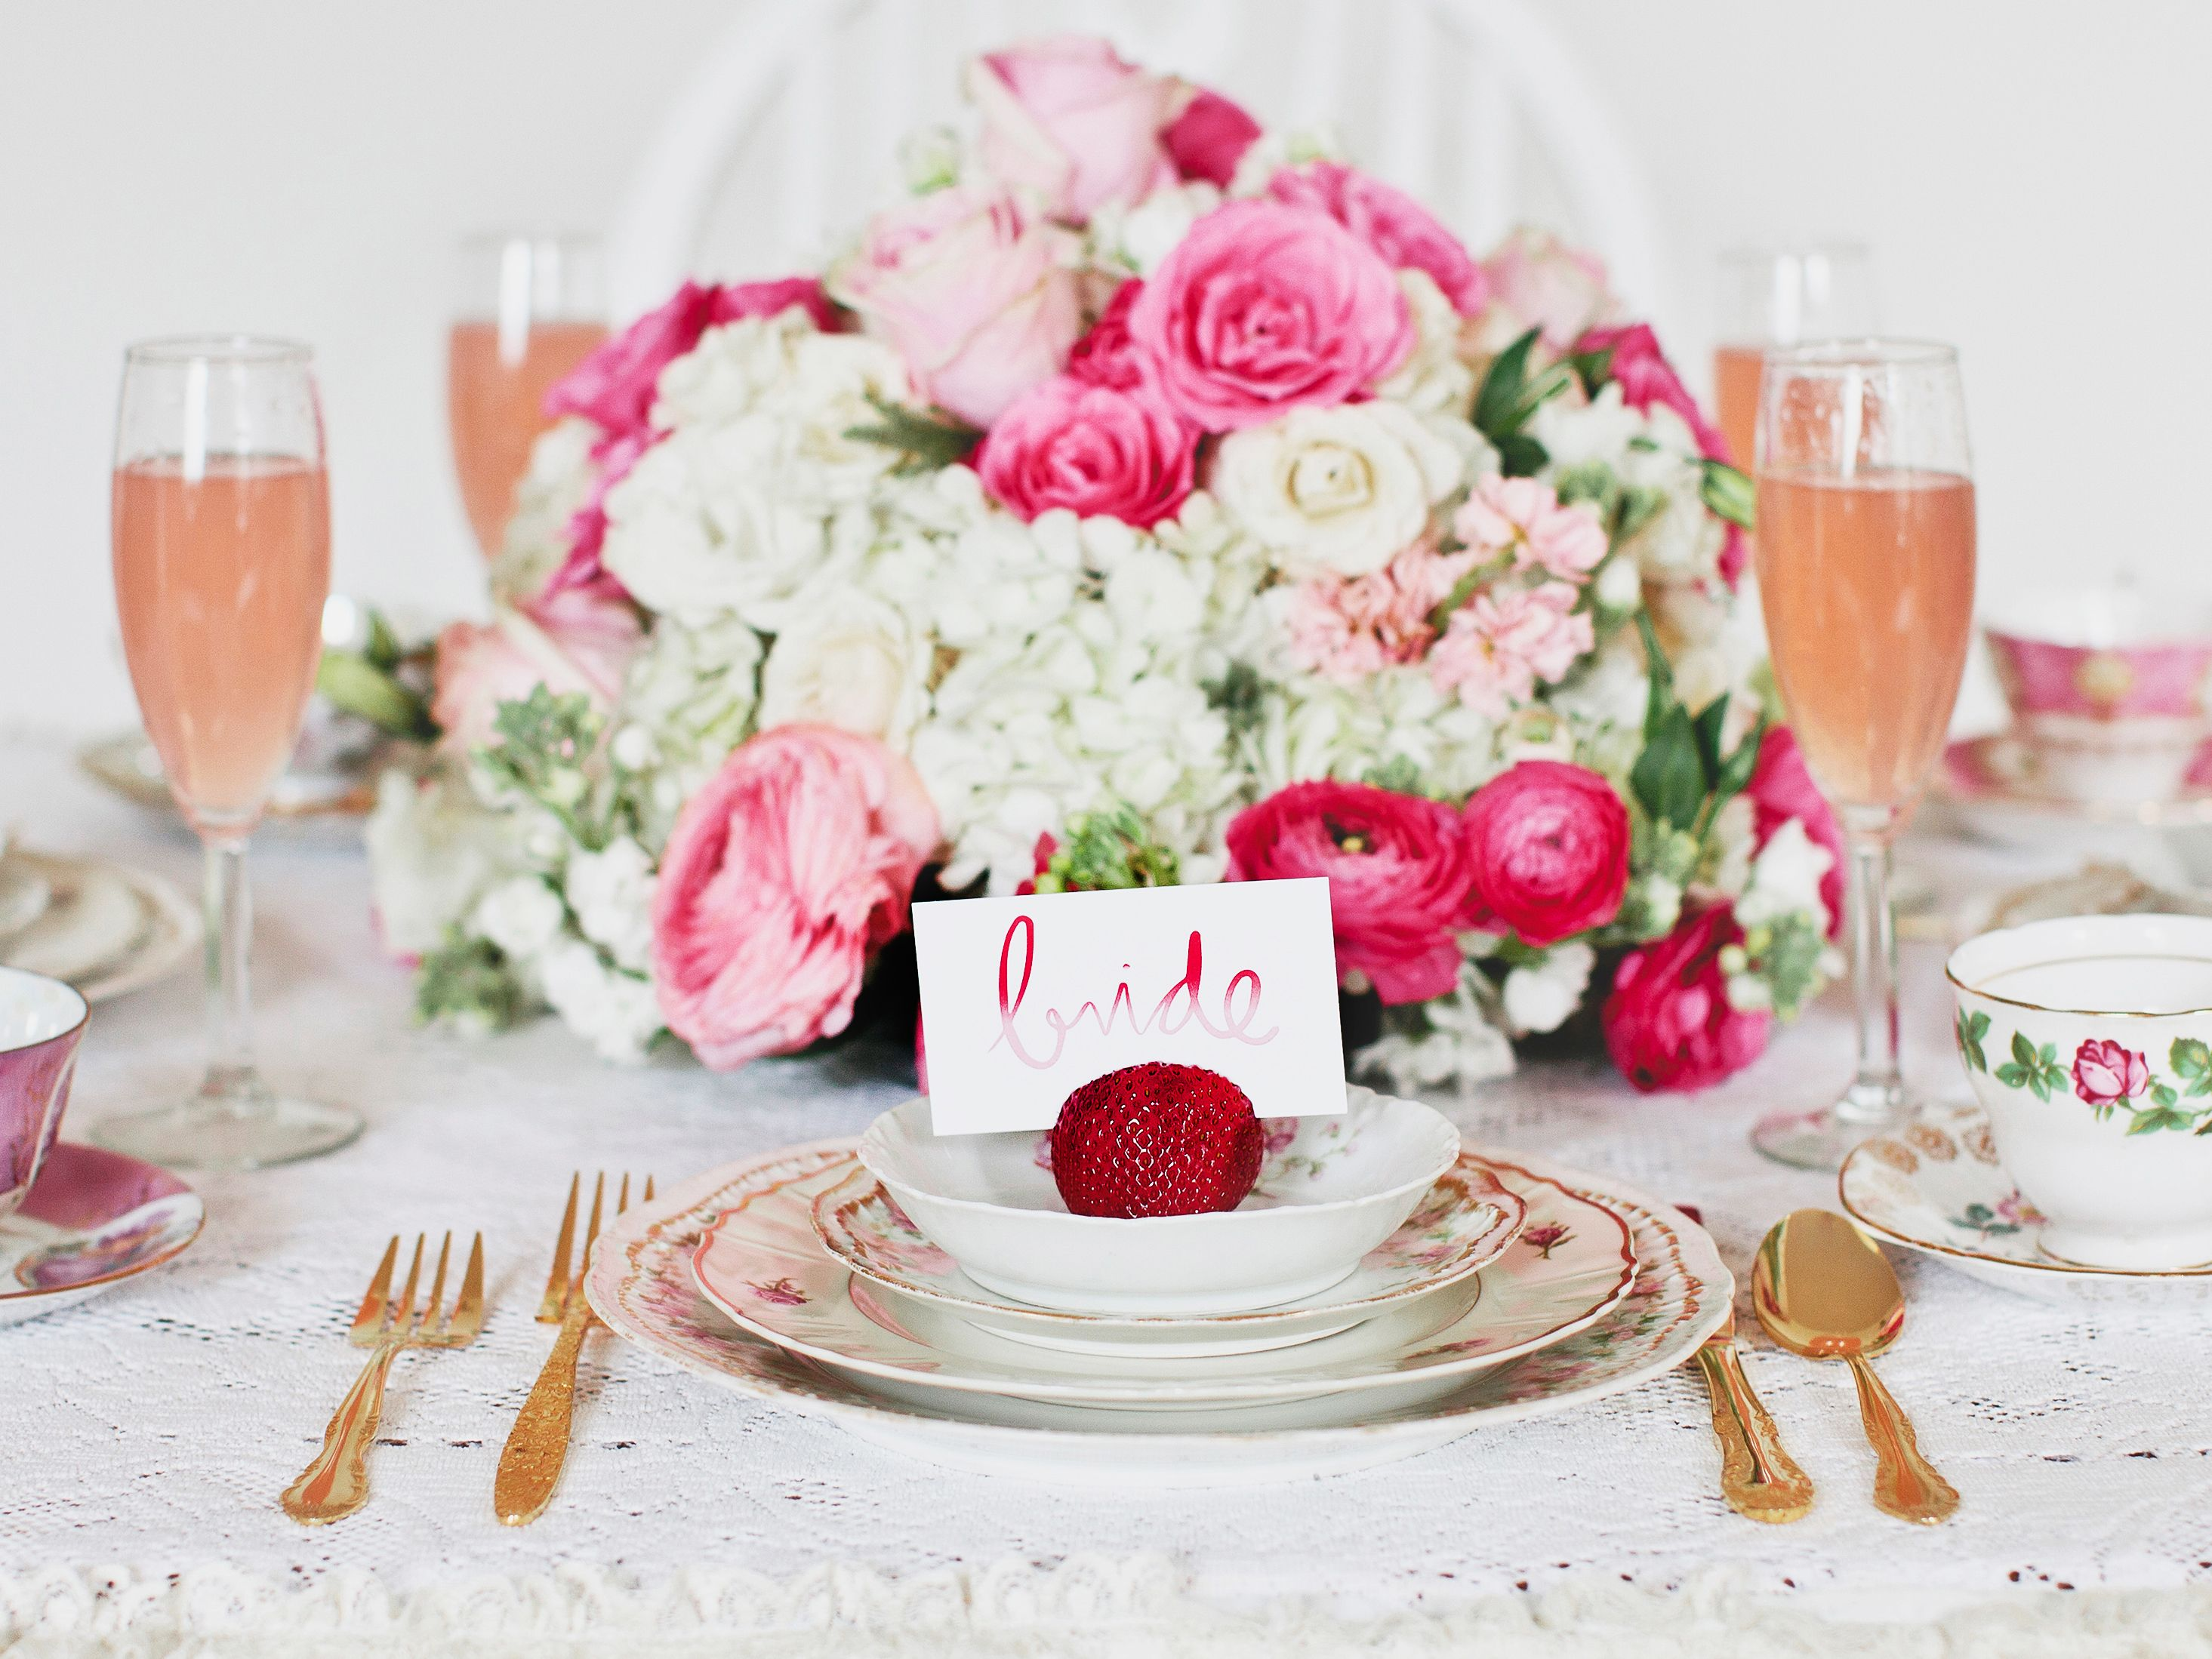 gifts to give for bridal shower games%0A MustRead Steps to Planning an Amazing Bridal Shower